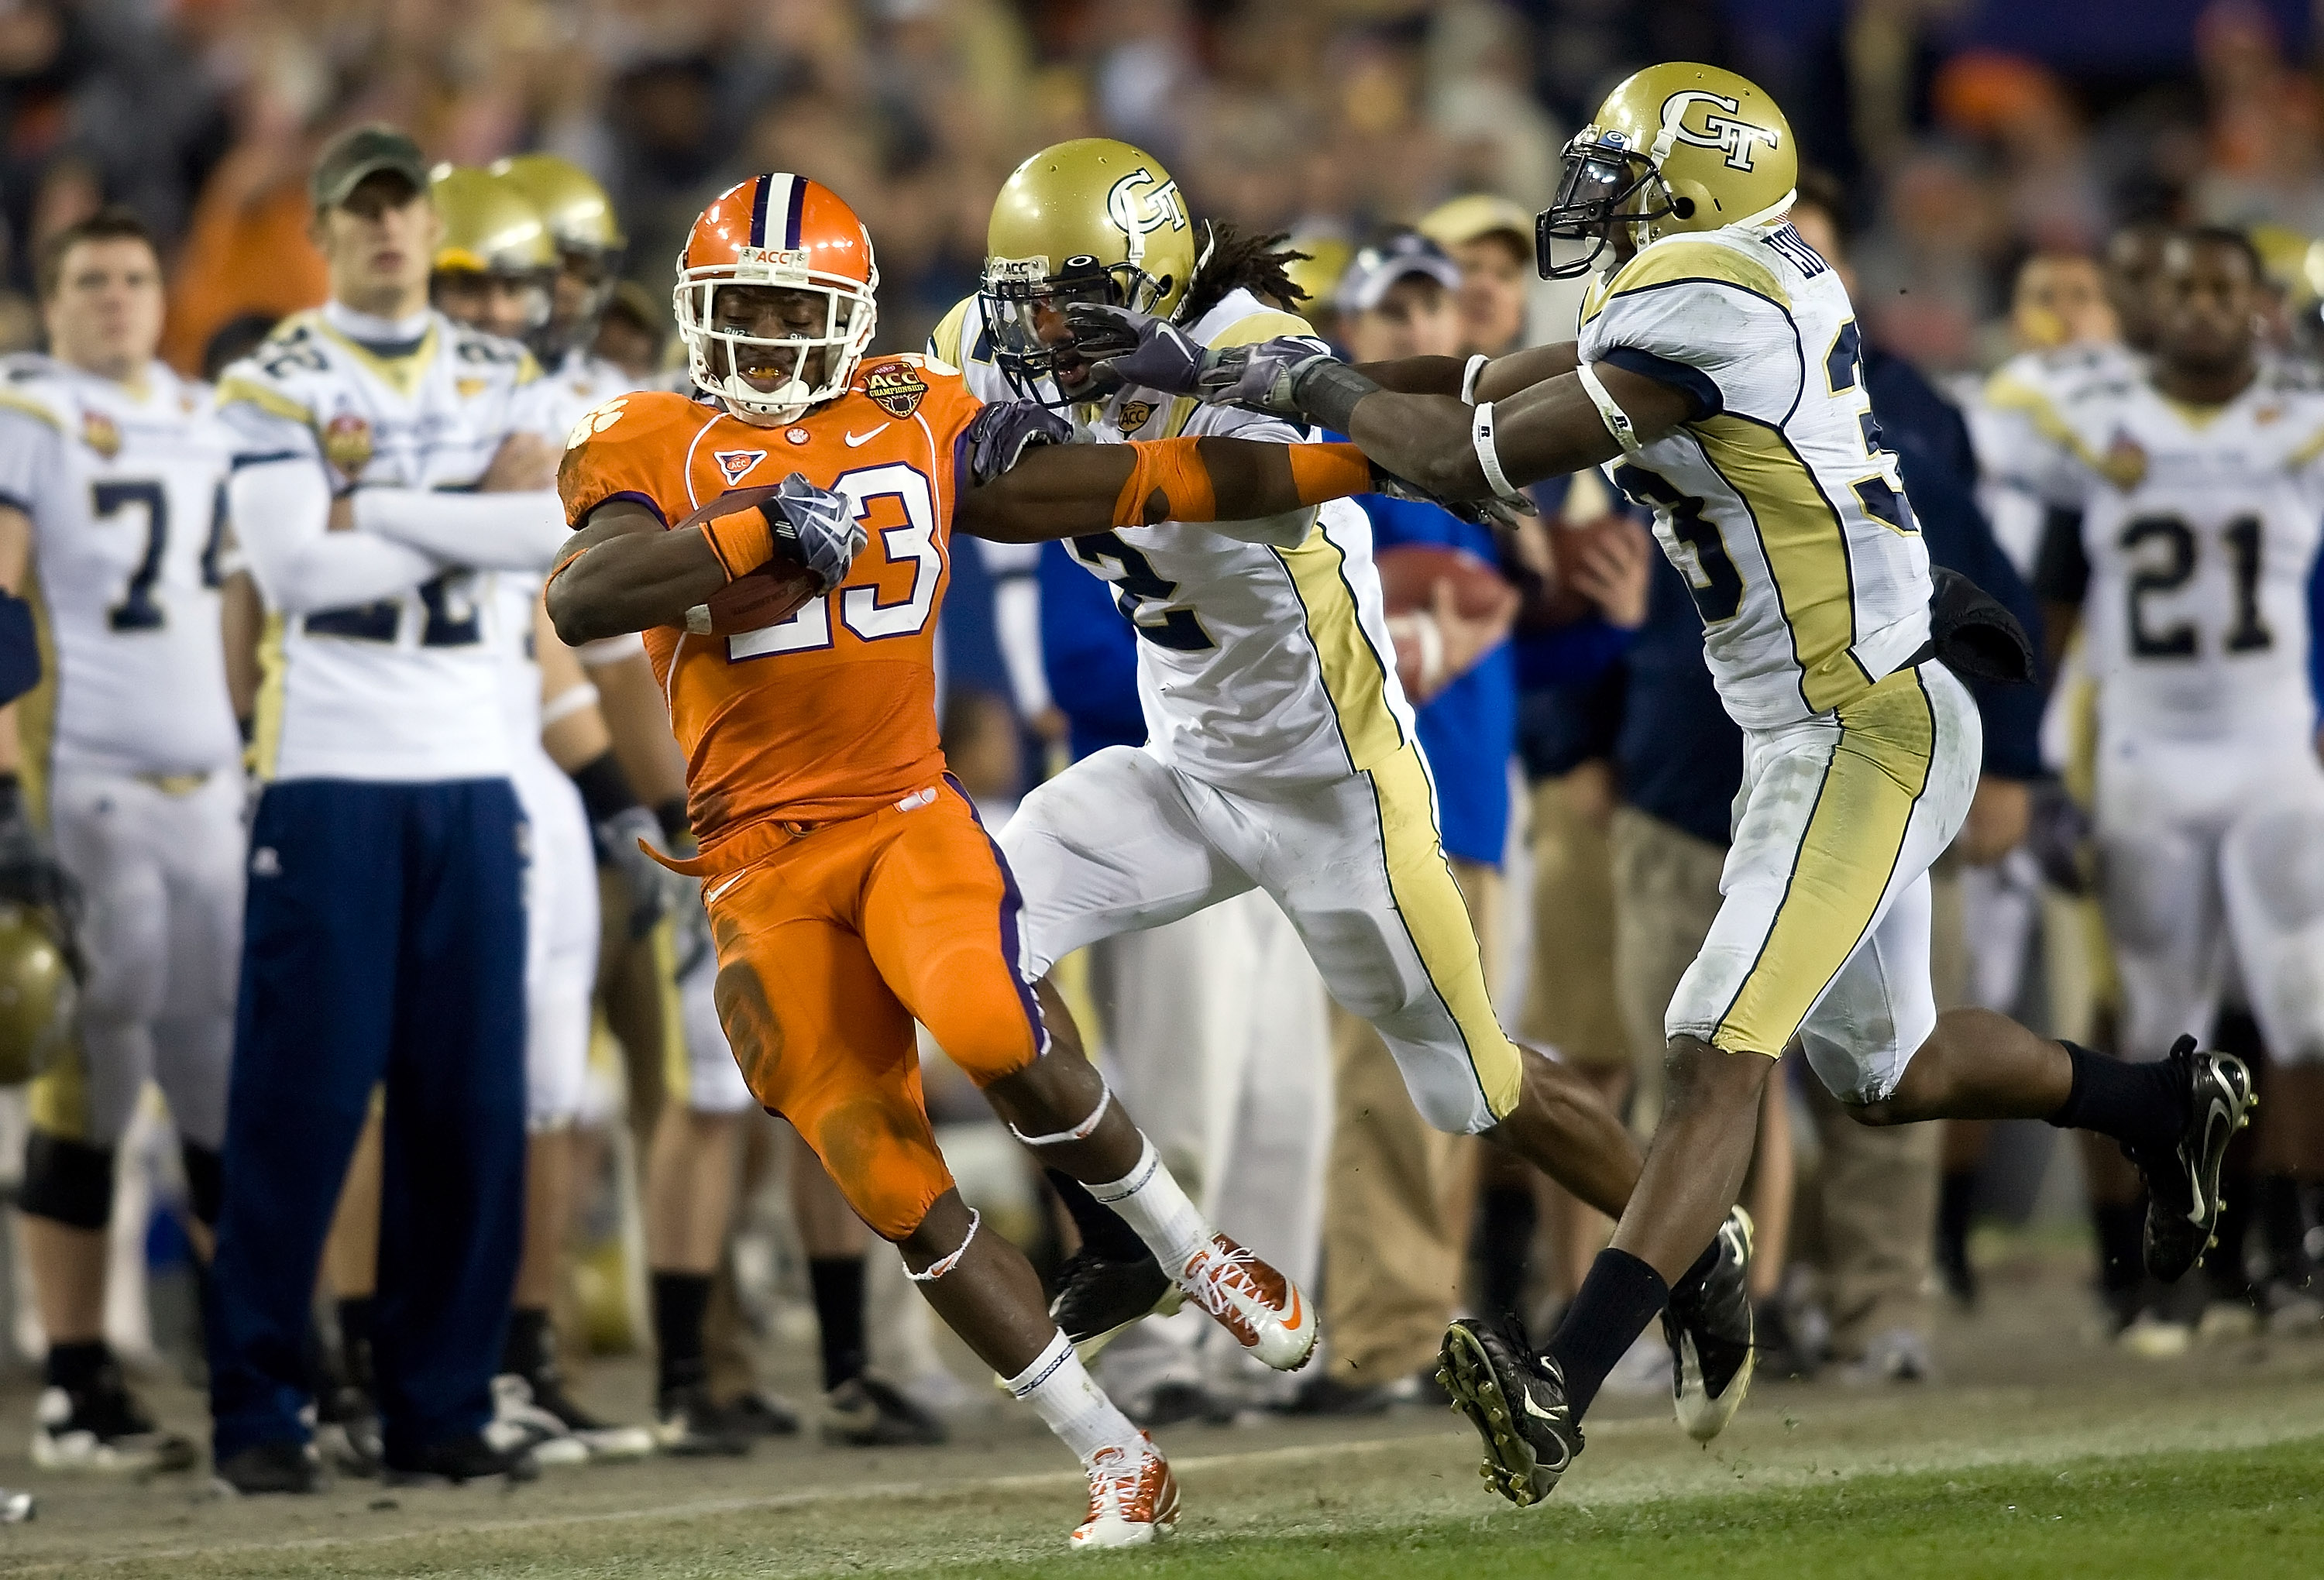 TAMPA, FL - DECEMBER 05:  Running back Andre Ellington #23 of the Clemson Tigers is knocked out of bounds by defenders Mario Butler #2 and Mario Edwards #33 of the Georgia Tech Yellow Jackets in the 2009 ACC Football Championship game at Raymond James Sta